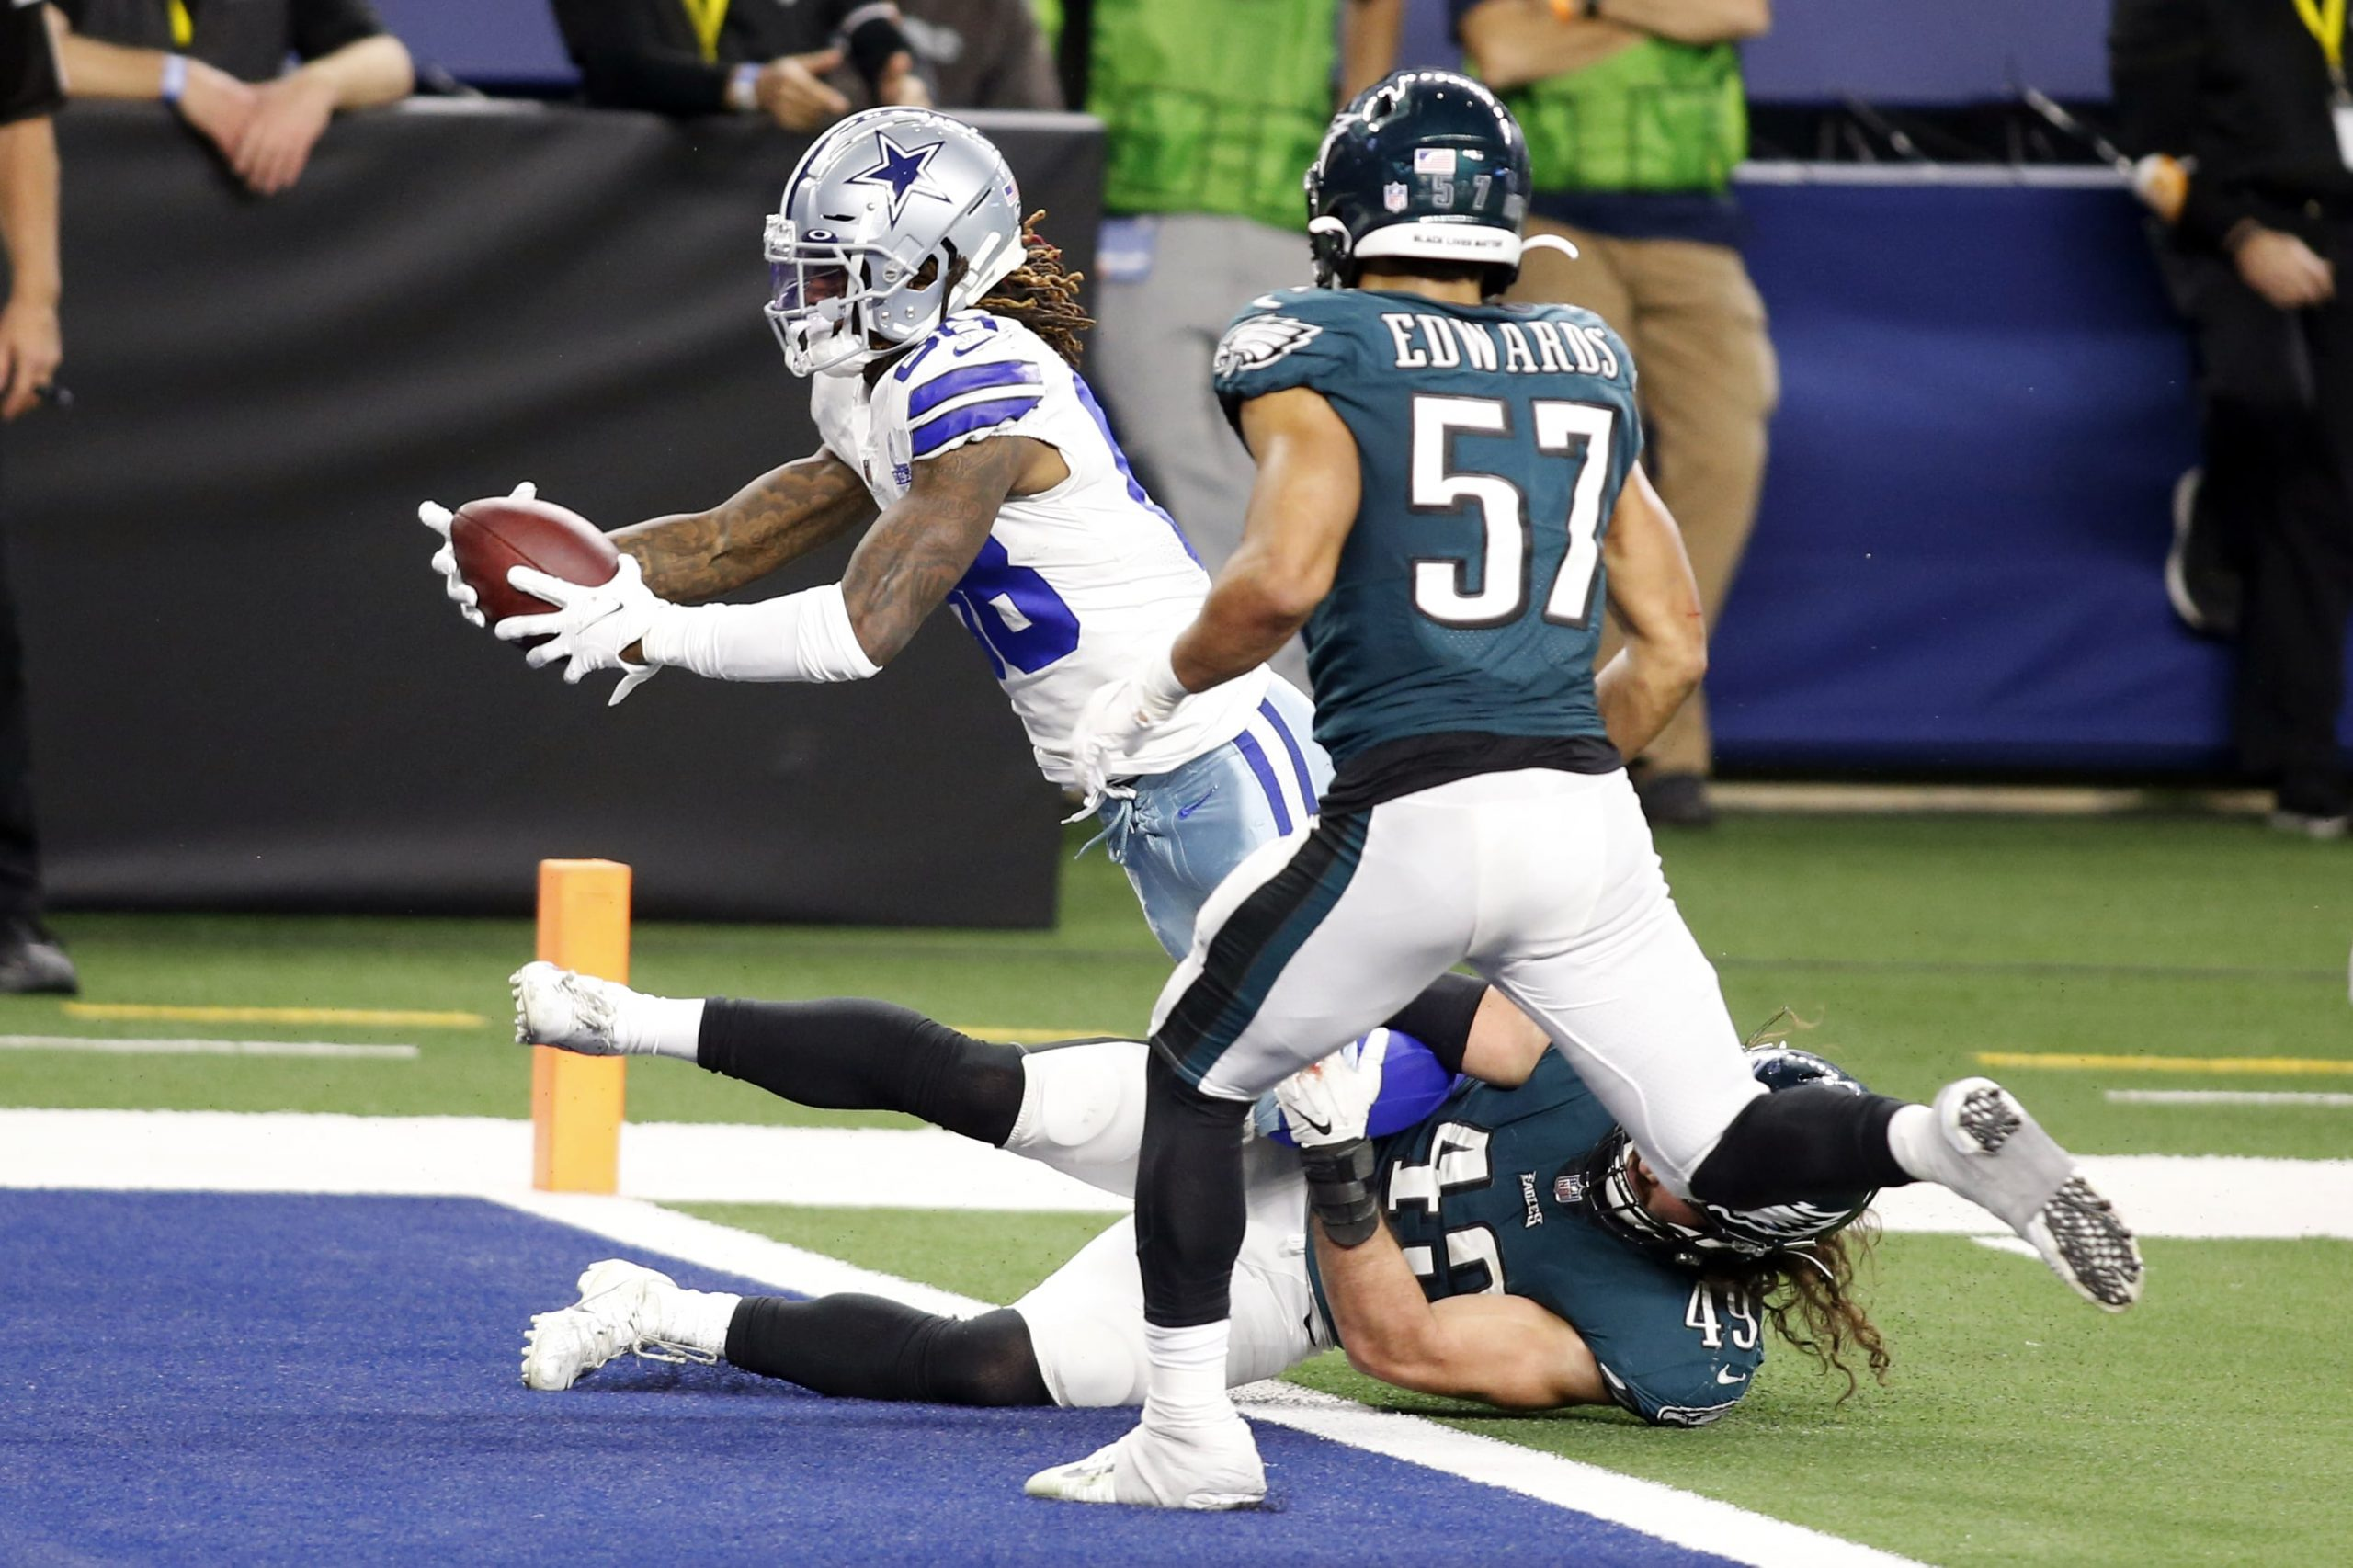 Dallas Cowboys wide receiver CeeDee Lamb (88) runs with the ball for a touchdown in the fourth quarter against Philadelphia Eagles linebacker Alex Singleton (49) at AT&T Stadium.